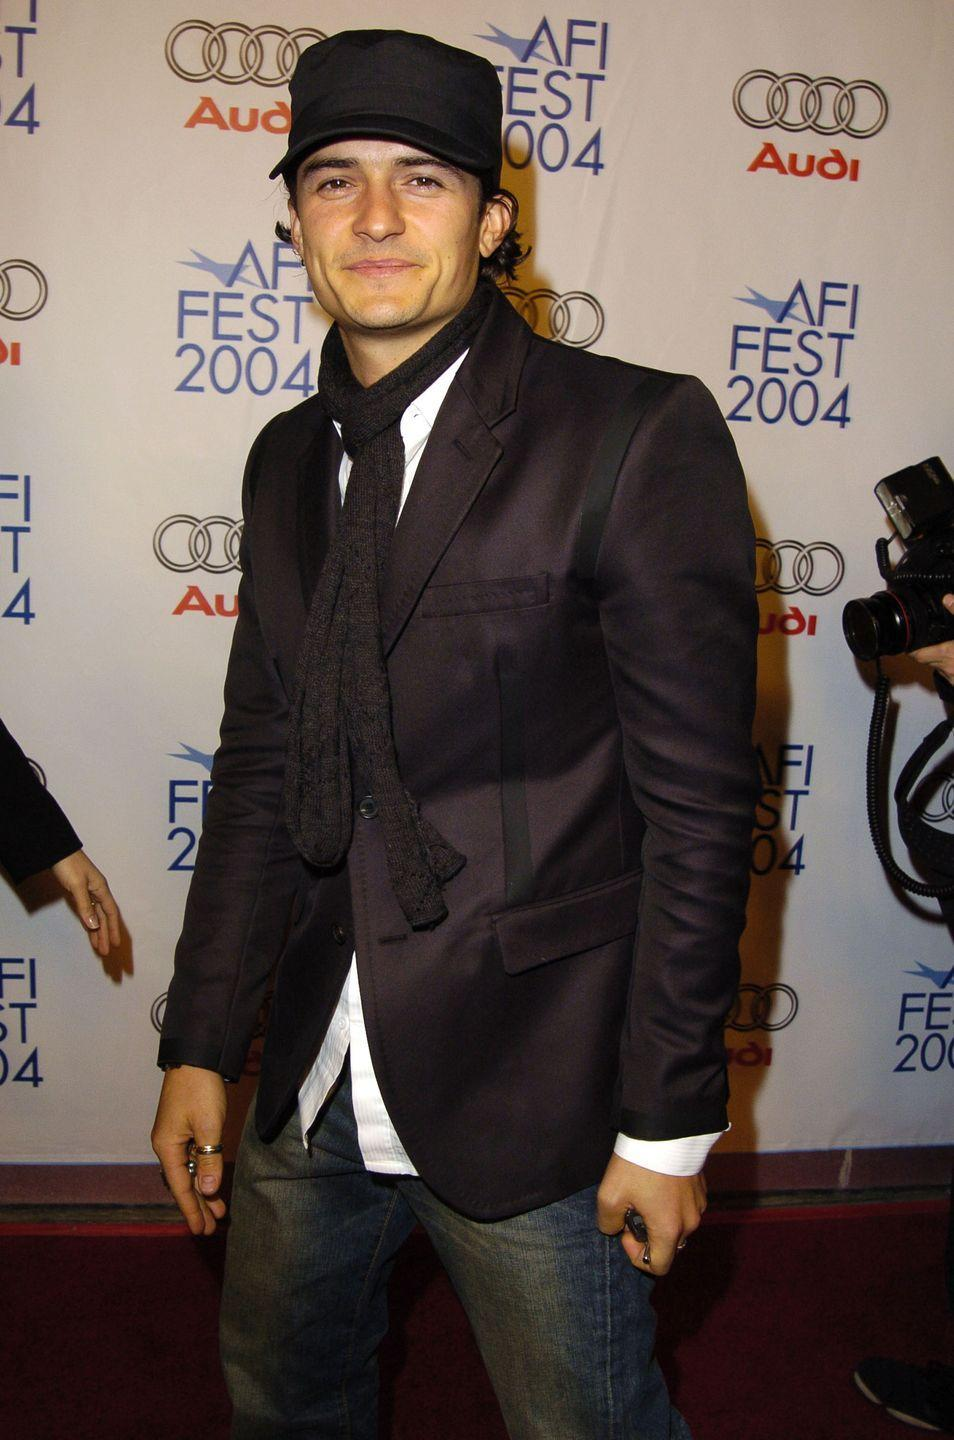 <p>Skinny scarves and newsboy caps were an iconic duo in 2004, as seen on Orlando Bloom at the premiere of <em>Beyond the Sea.</em></p>